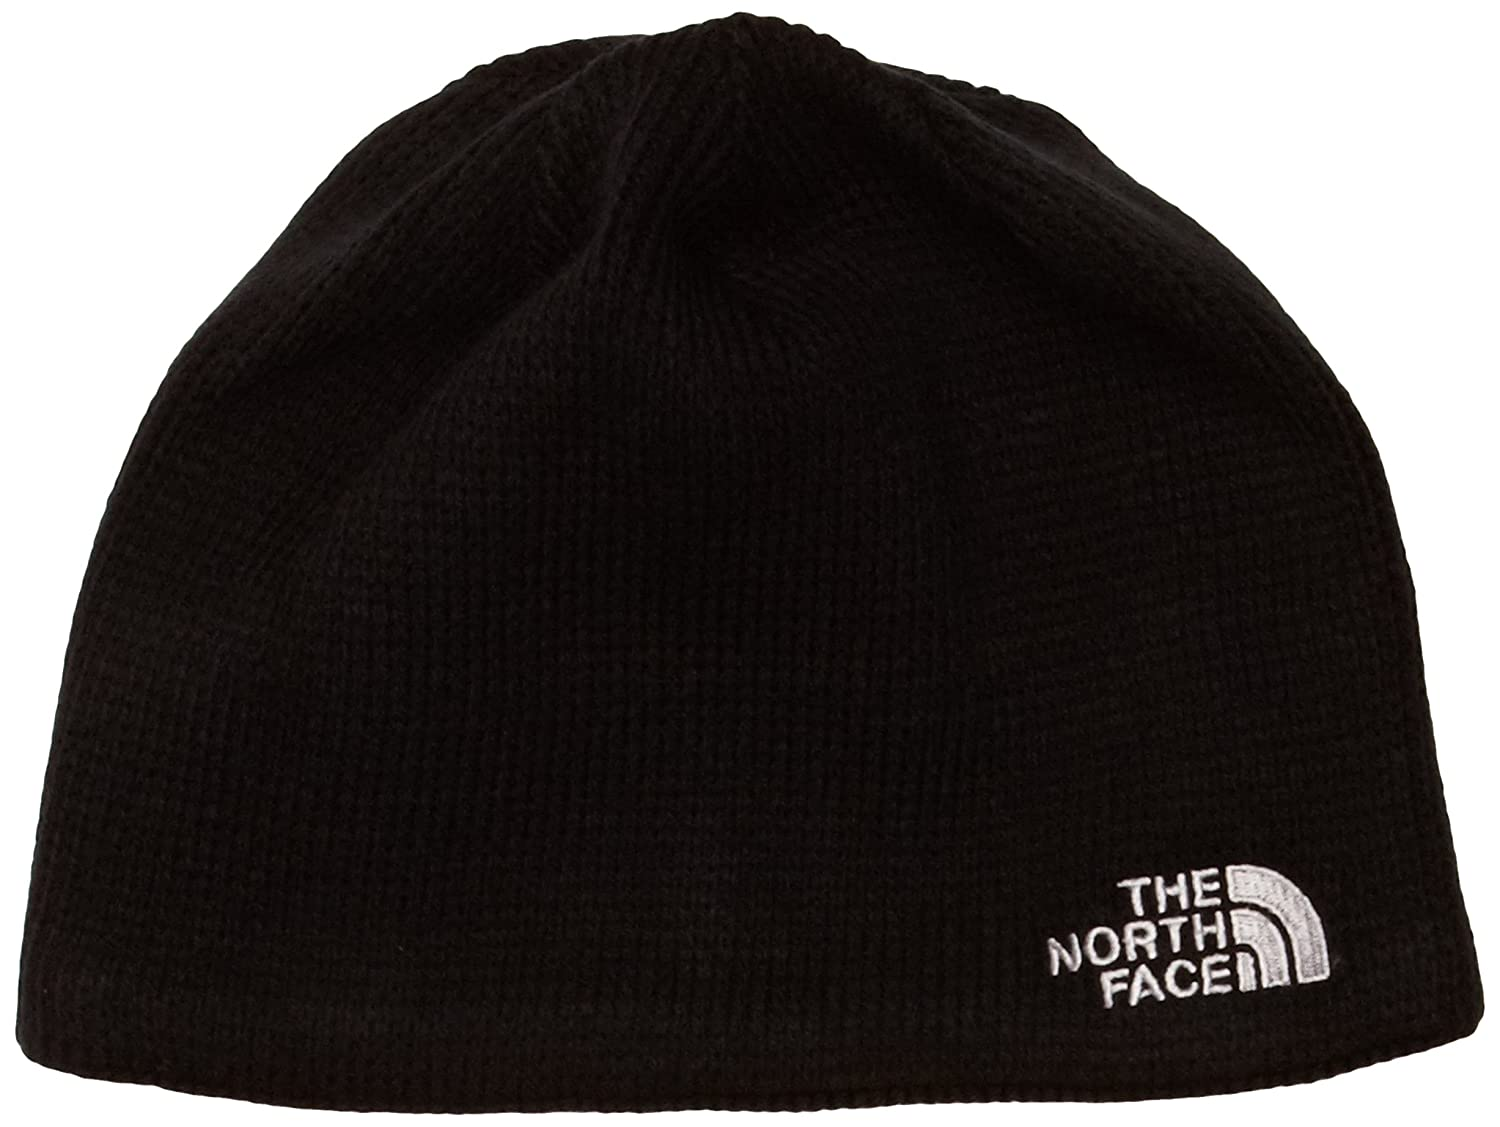 02eb6a2aa512e The North Face Unisex Bones Beanie TNF Black One Size  Amazon.in  Sports